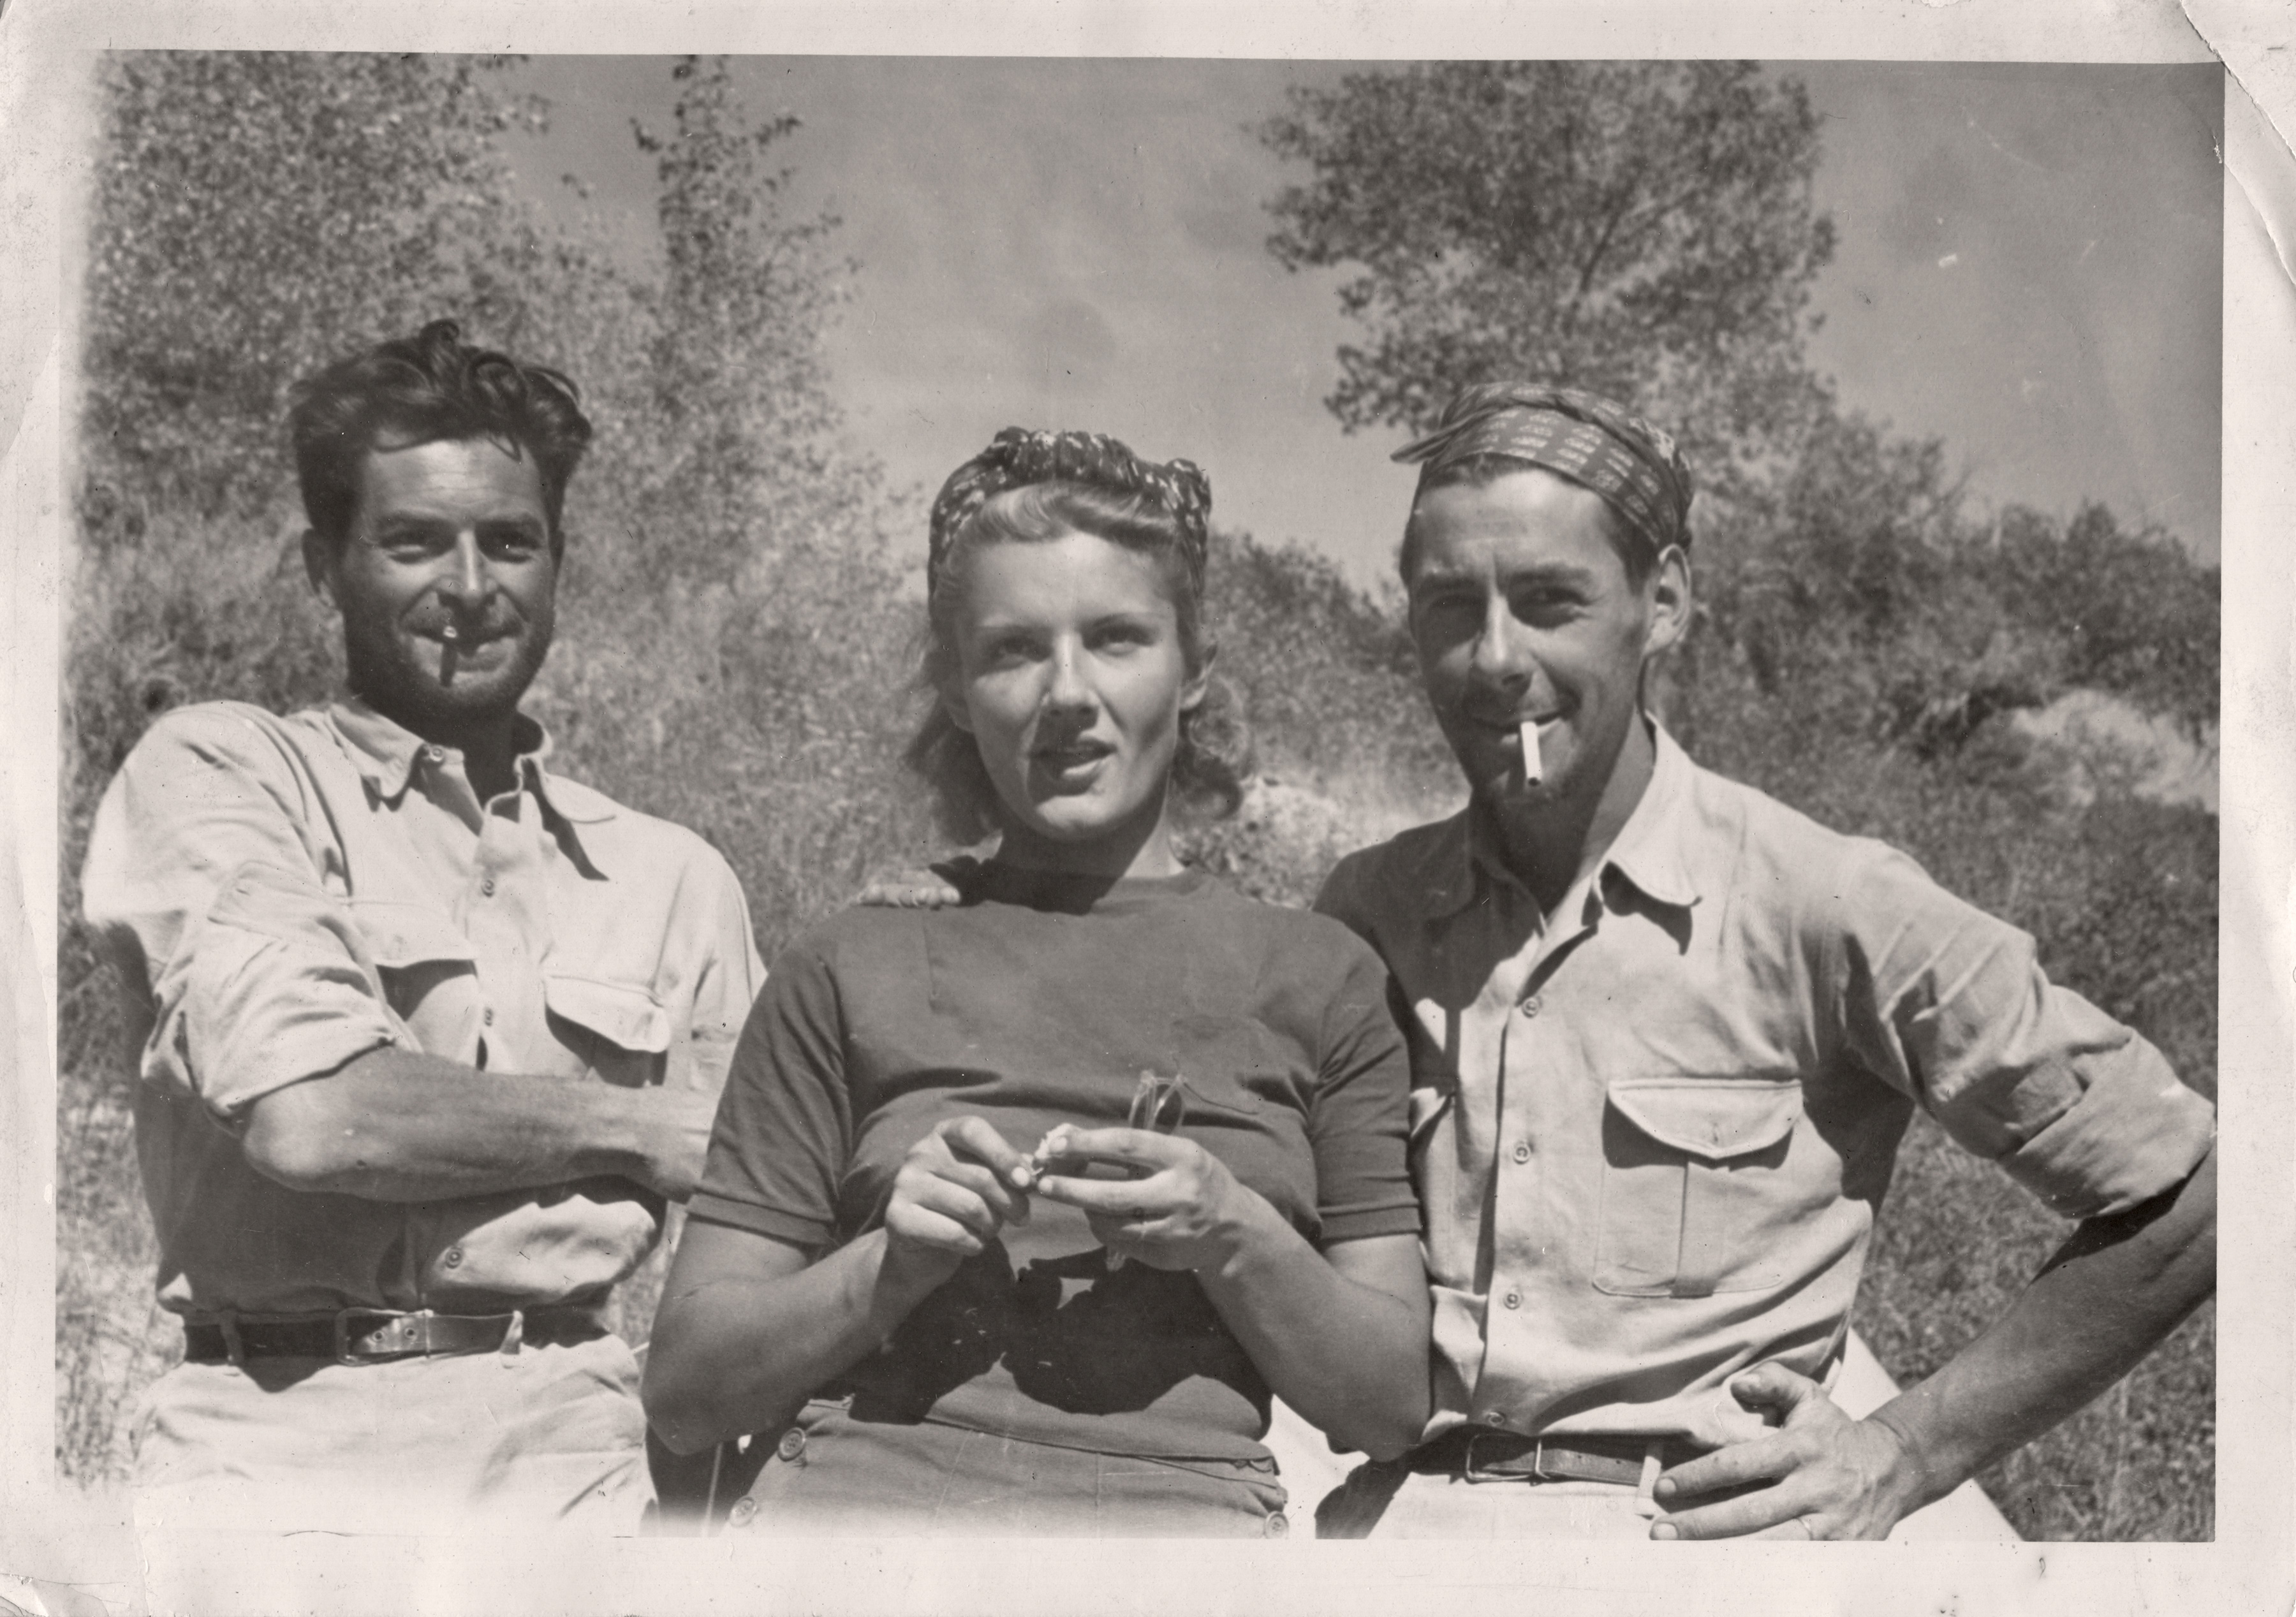 The three Parisians who kayaked down the Green and Colorado rivers in 1938 and filmed their adventure.